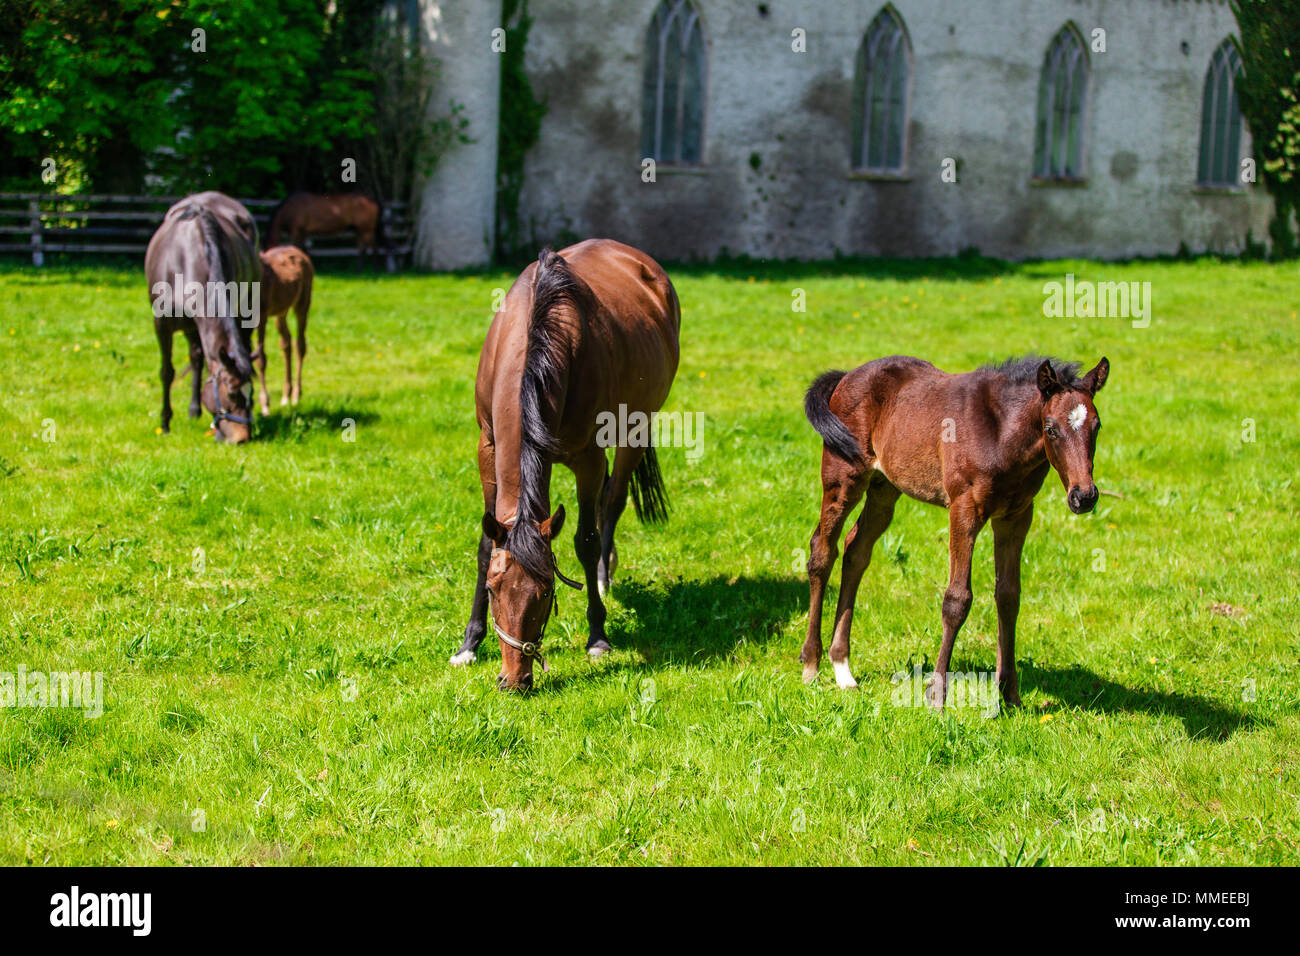 Thoroughbred brood mares with foals grazing in a pasture at the Palmerstown House Estate, County Kildare Ireland. - Stock Image